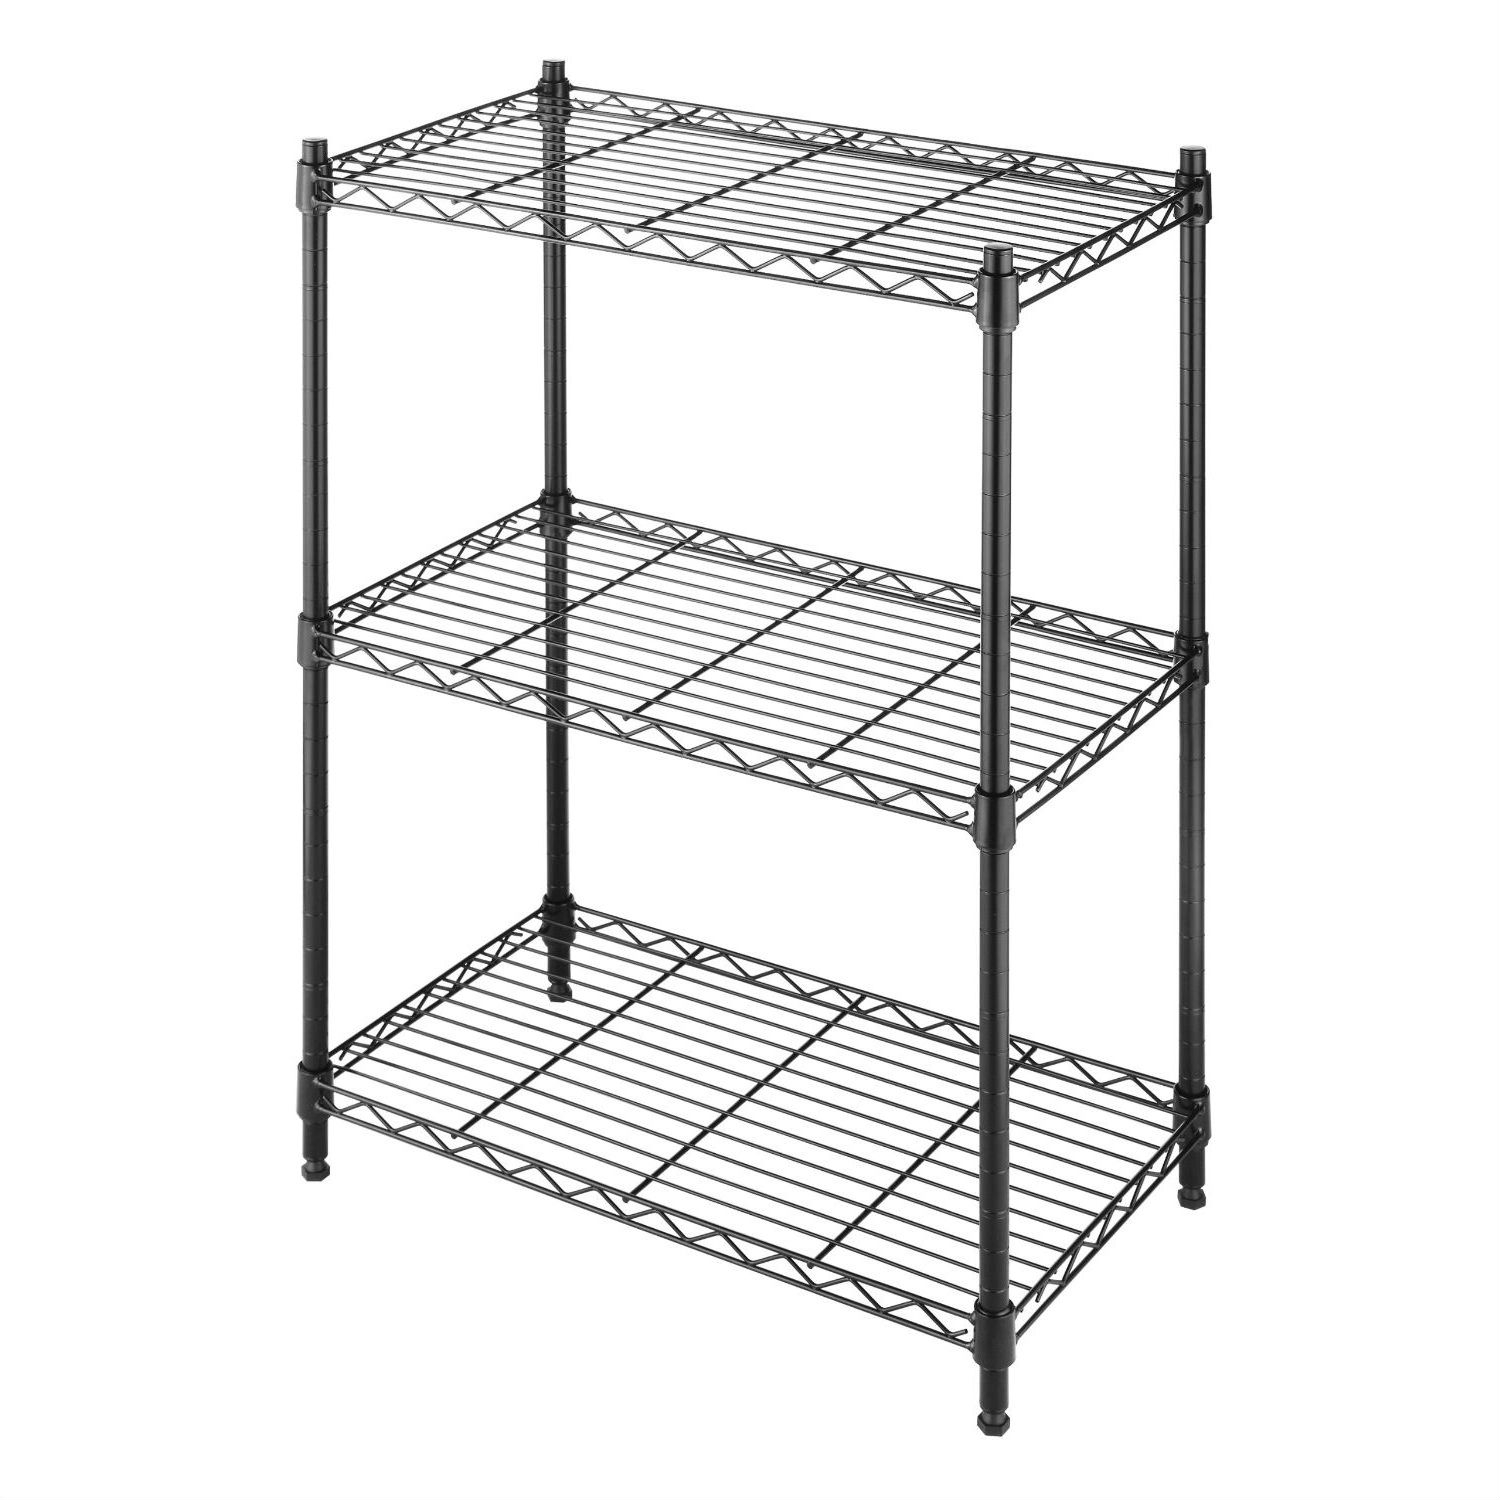 solid rack ross dexco and structural technology beam shelf i storage systems tool die industrial